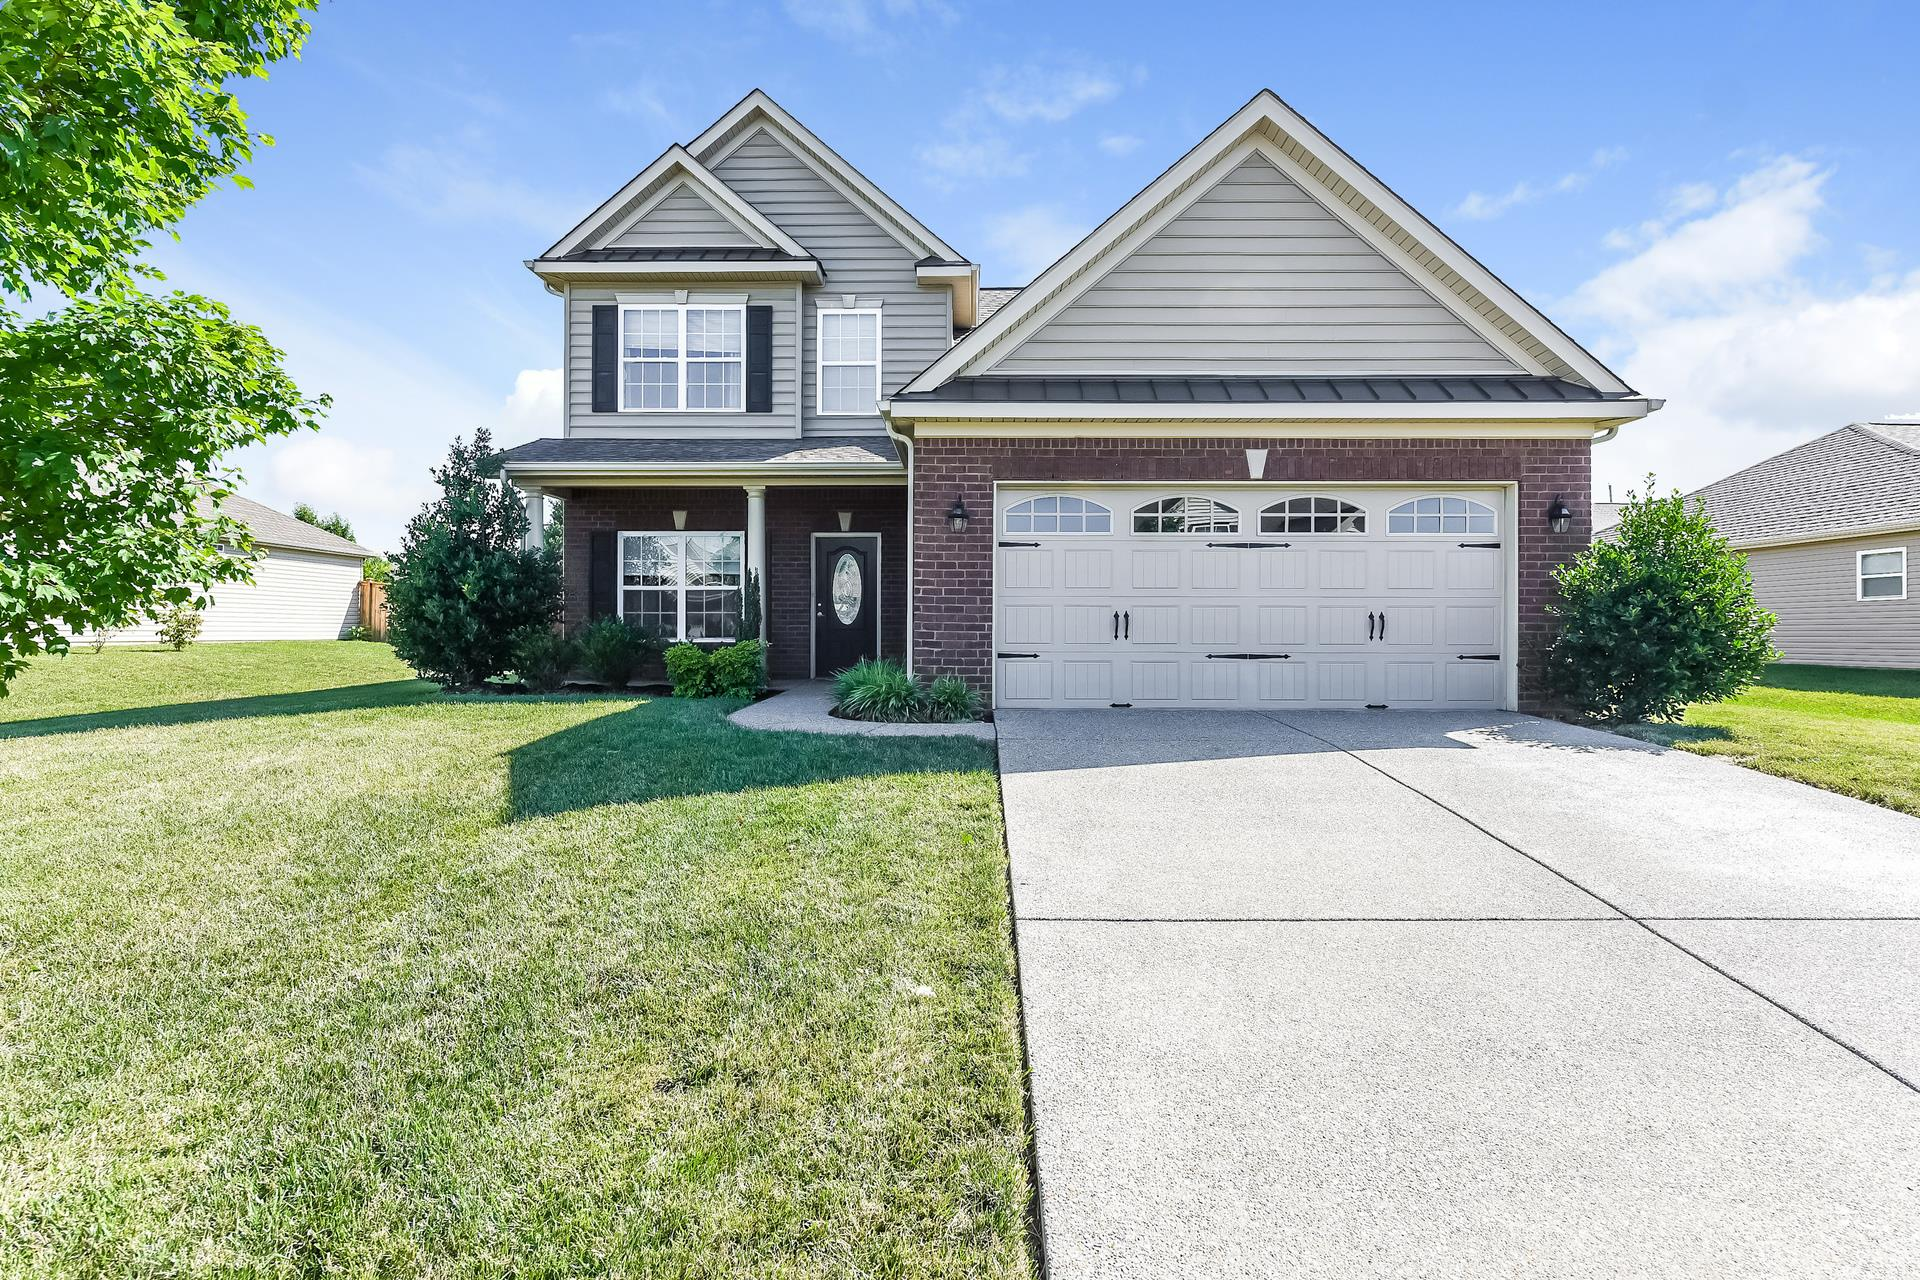 1104 Savannah Ave 37066 - One of Gallatin Homes for Sale